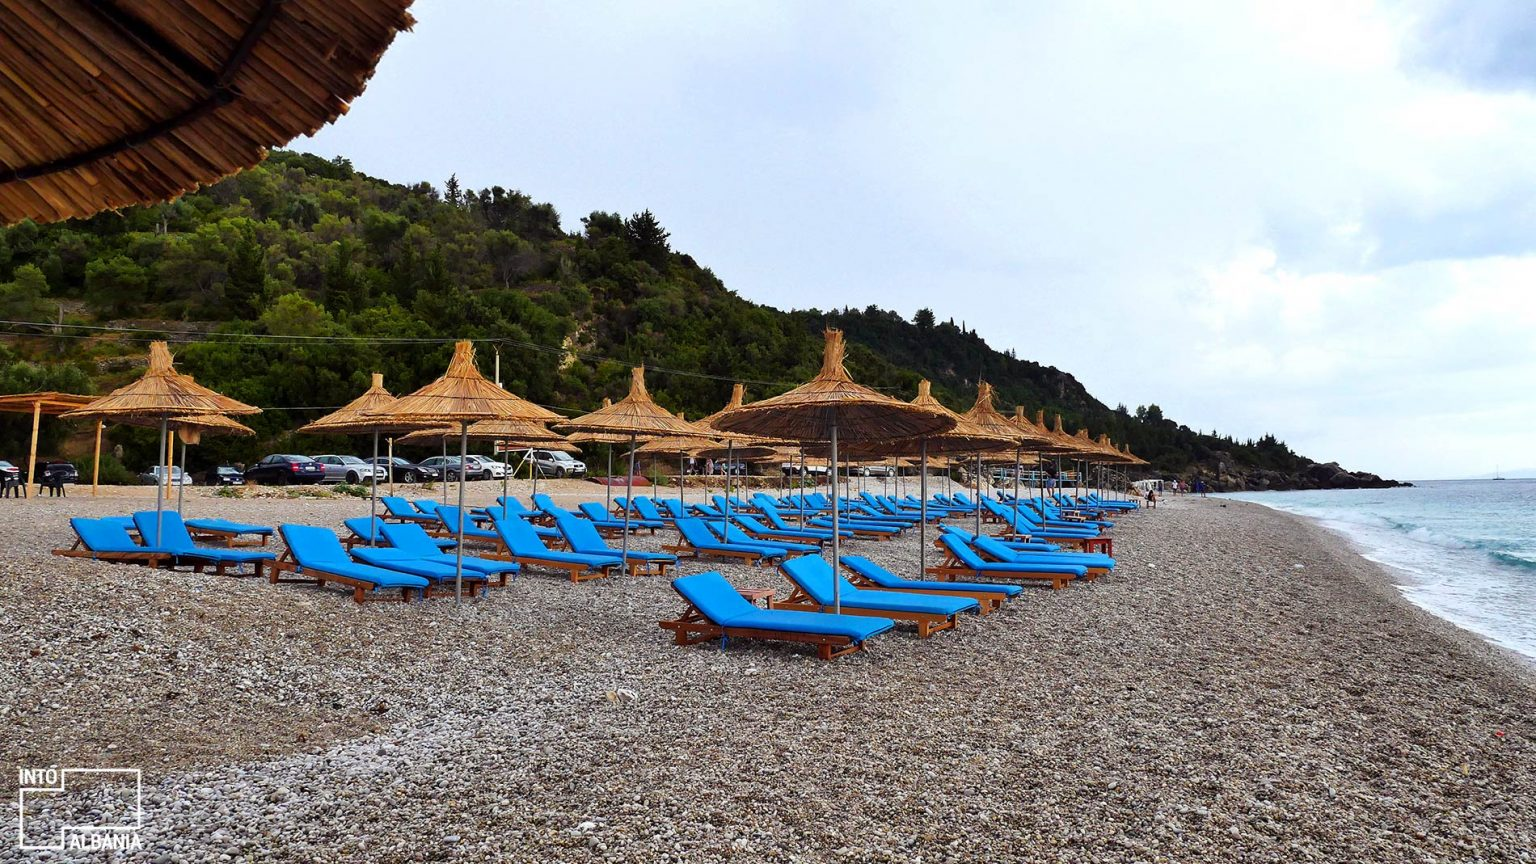 Livadh beach, photo by IntoAlbania